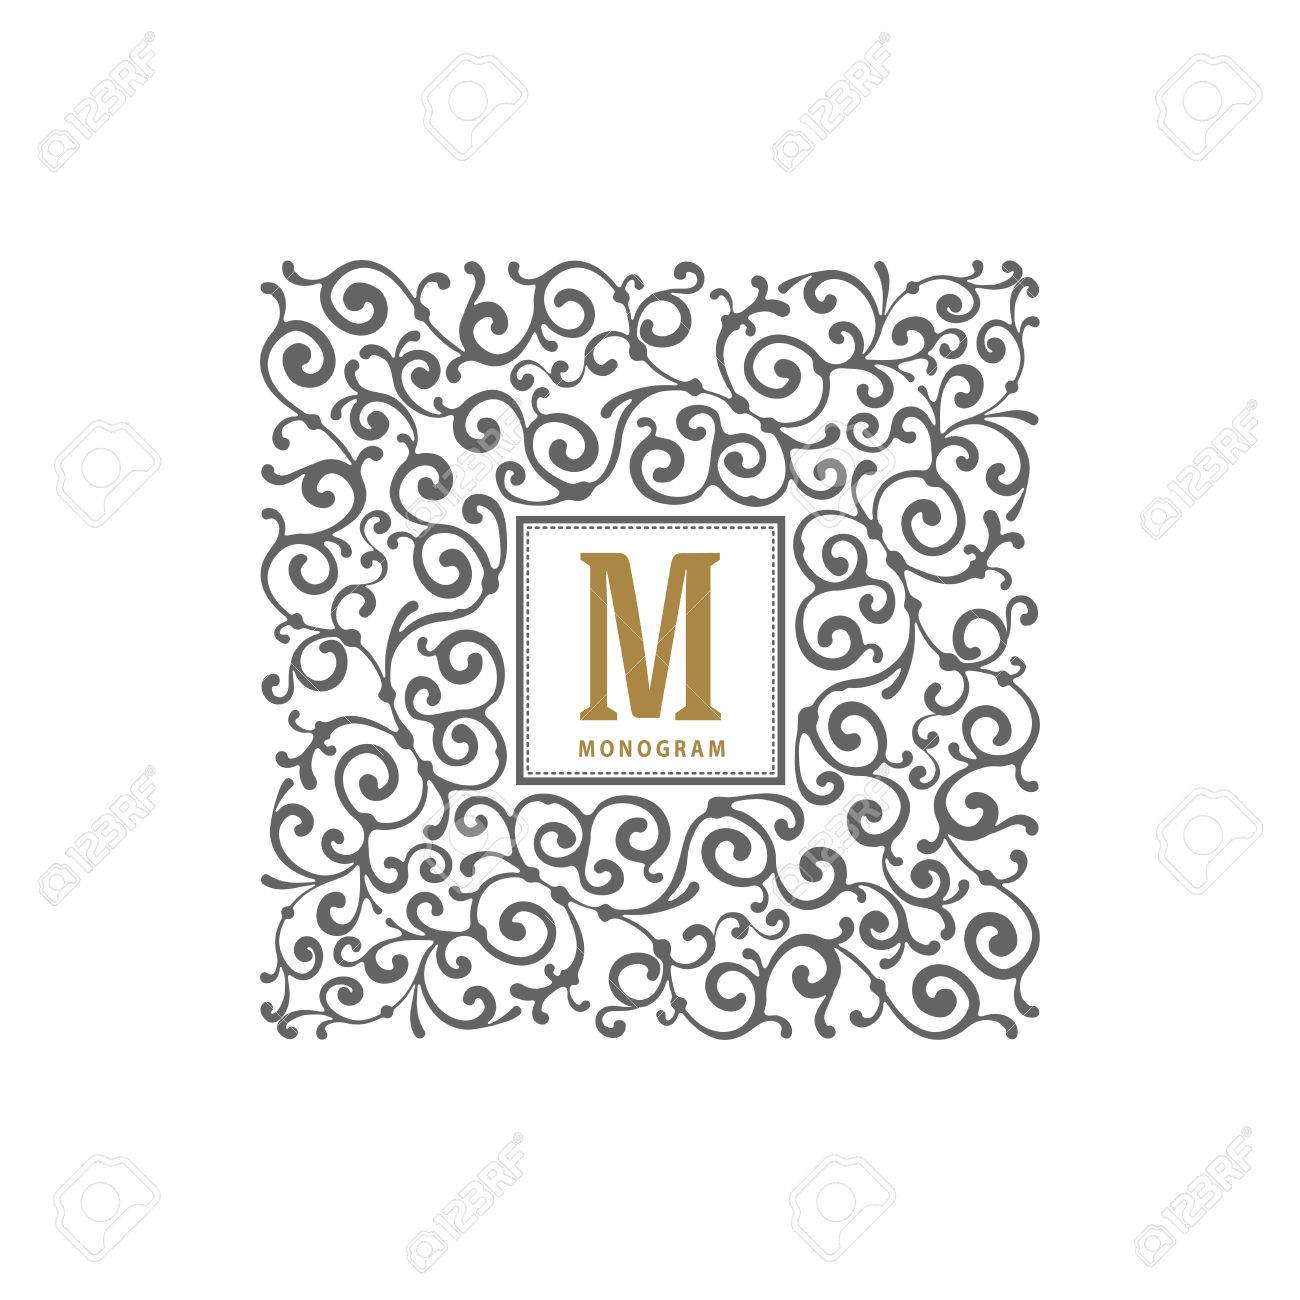 Simple And Elegant Monogram Template With Letter And Flourishes  Calligraphic Ornament Frame. Identity Design For